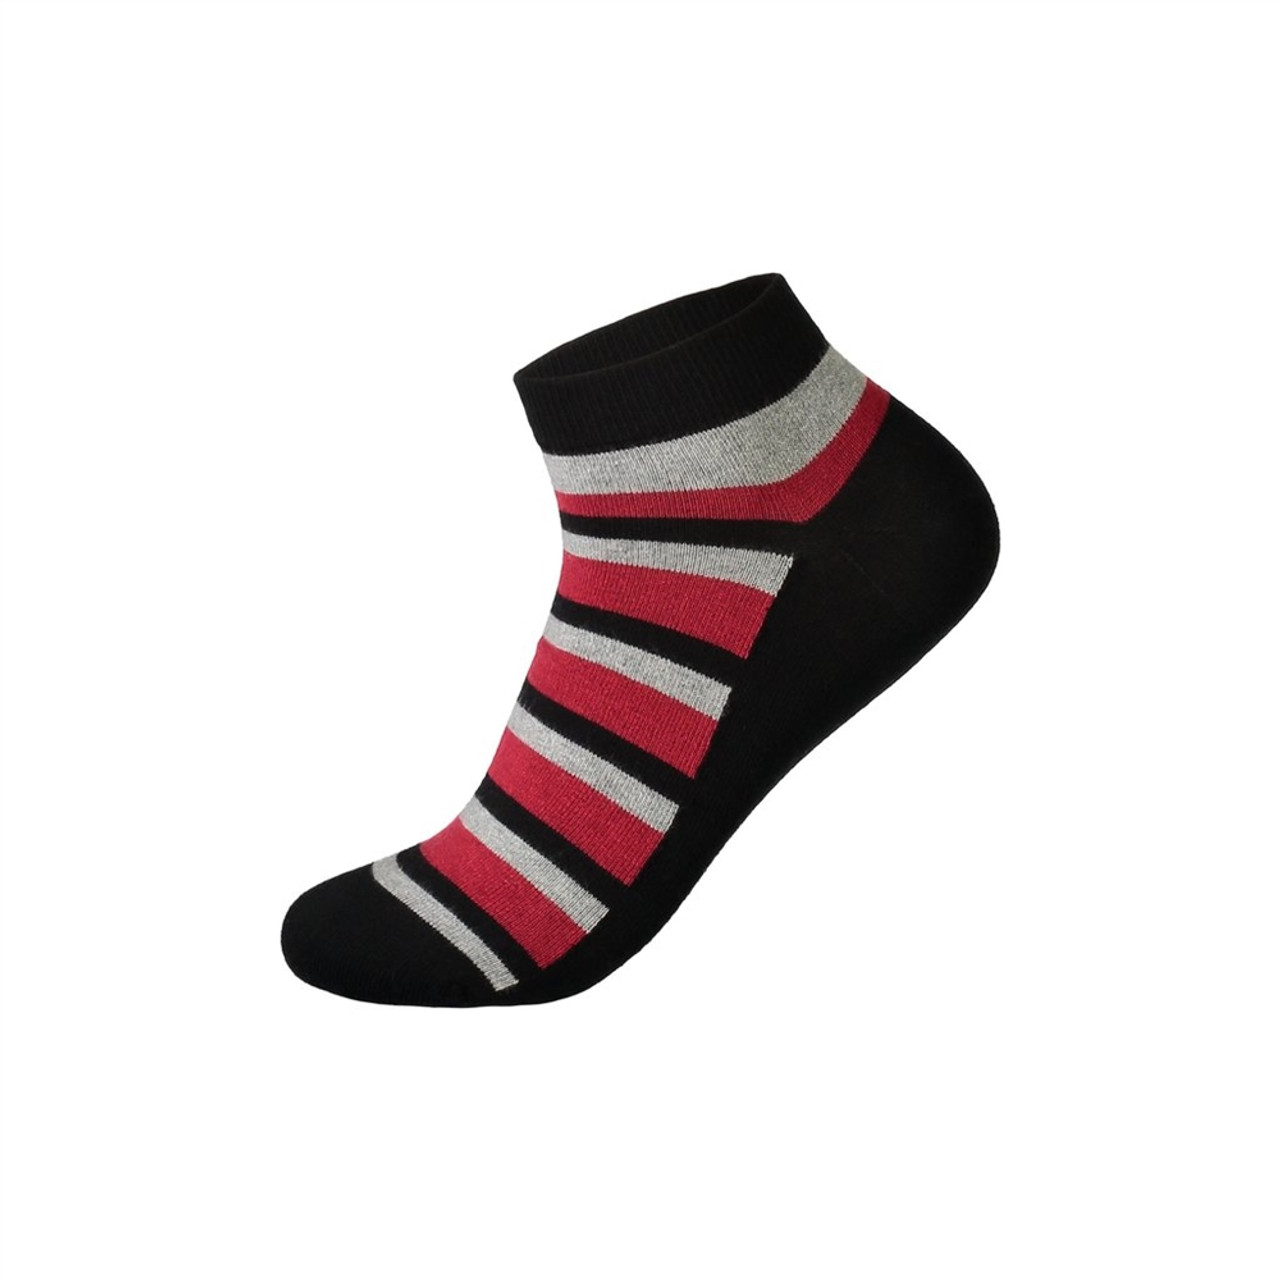 Organic Ankle Socks for Women -  Fight Poverty